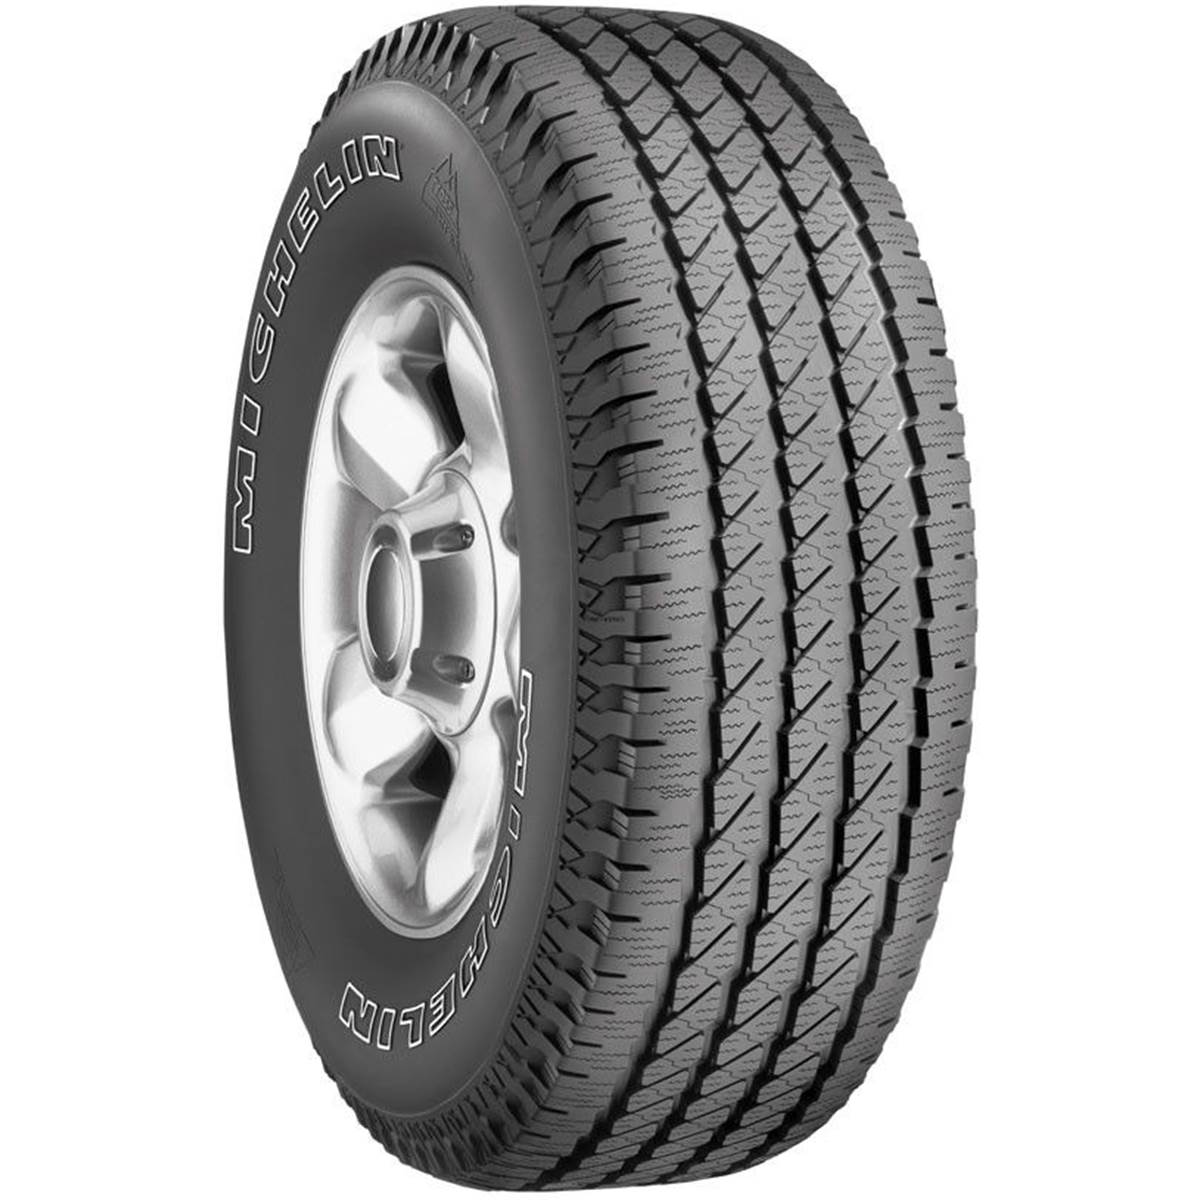 Michelin 4x4 O/R XZL XL